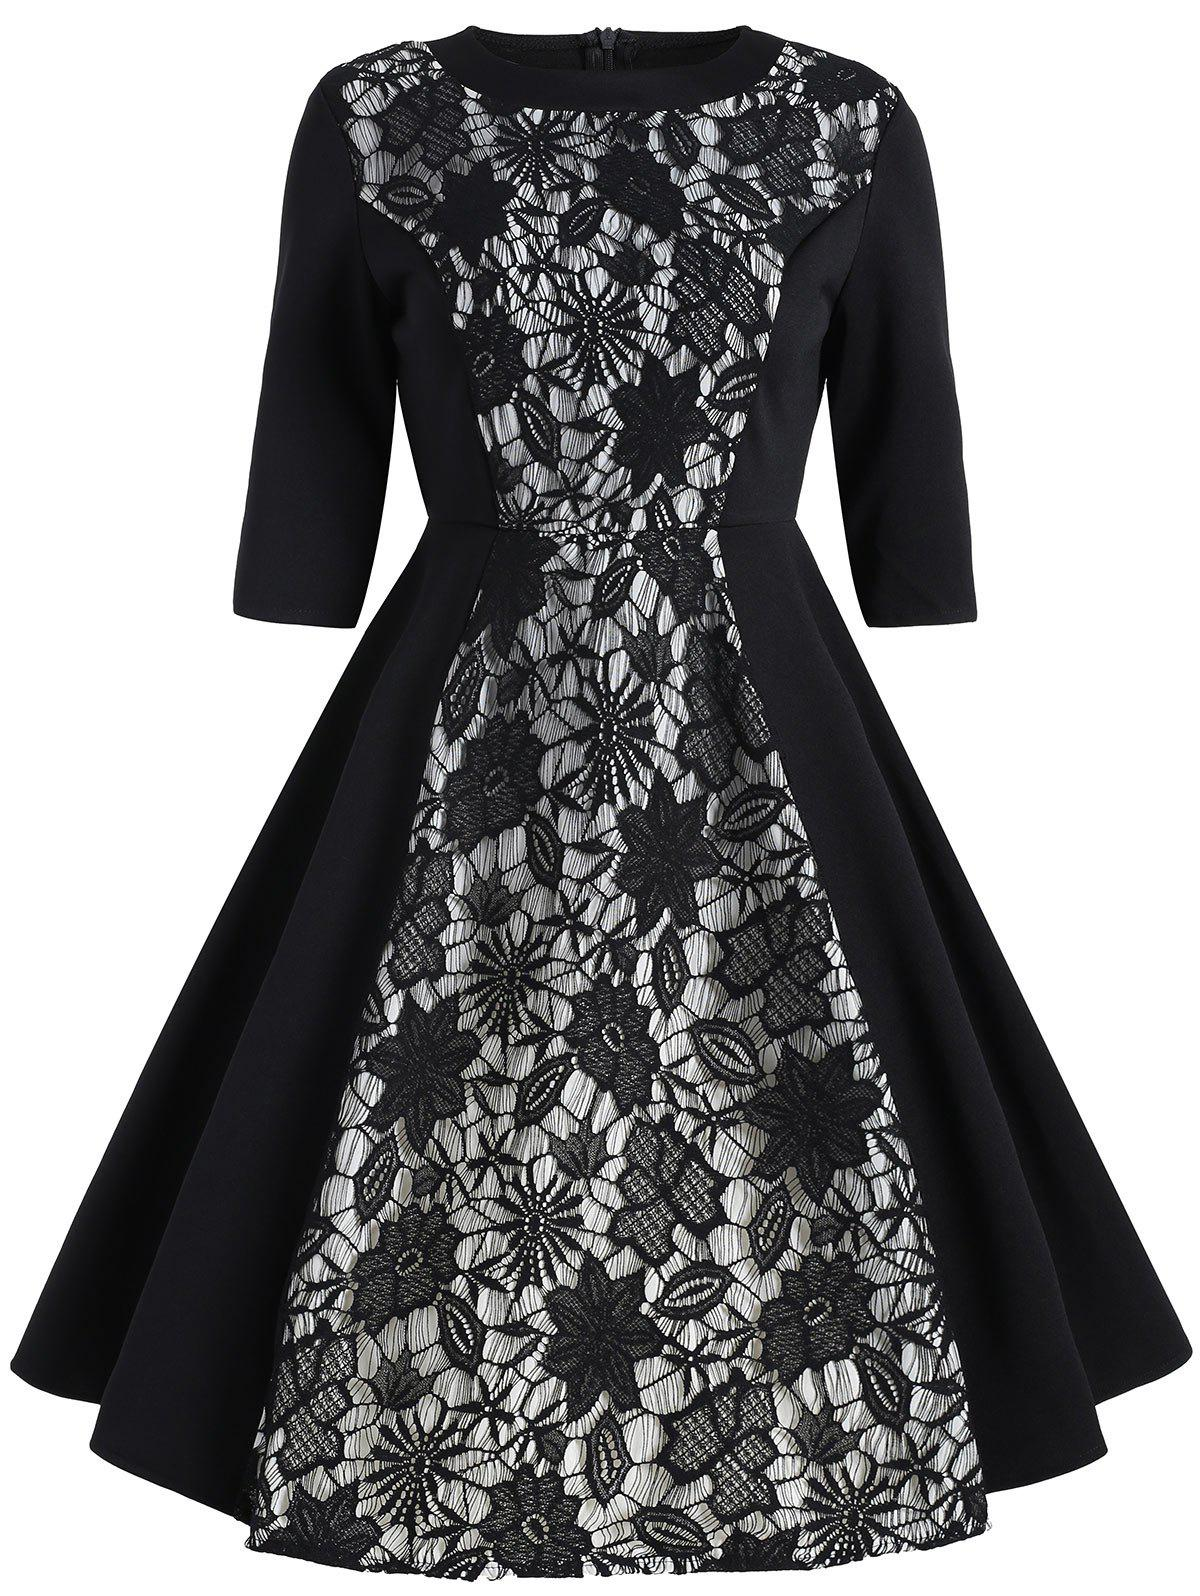 Vintage Floral Lace Insert Dress - BLACK M